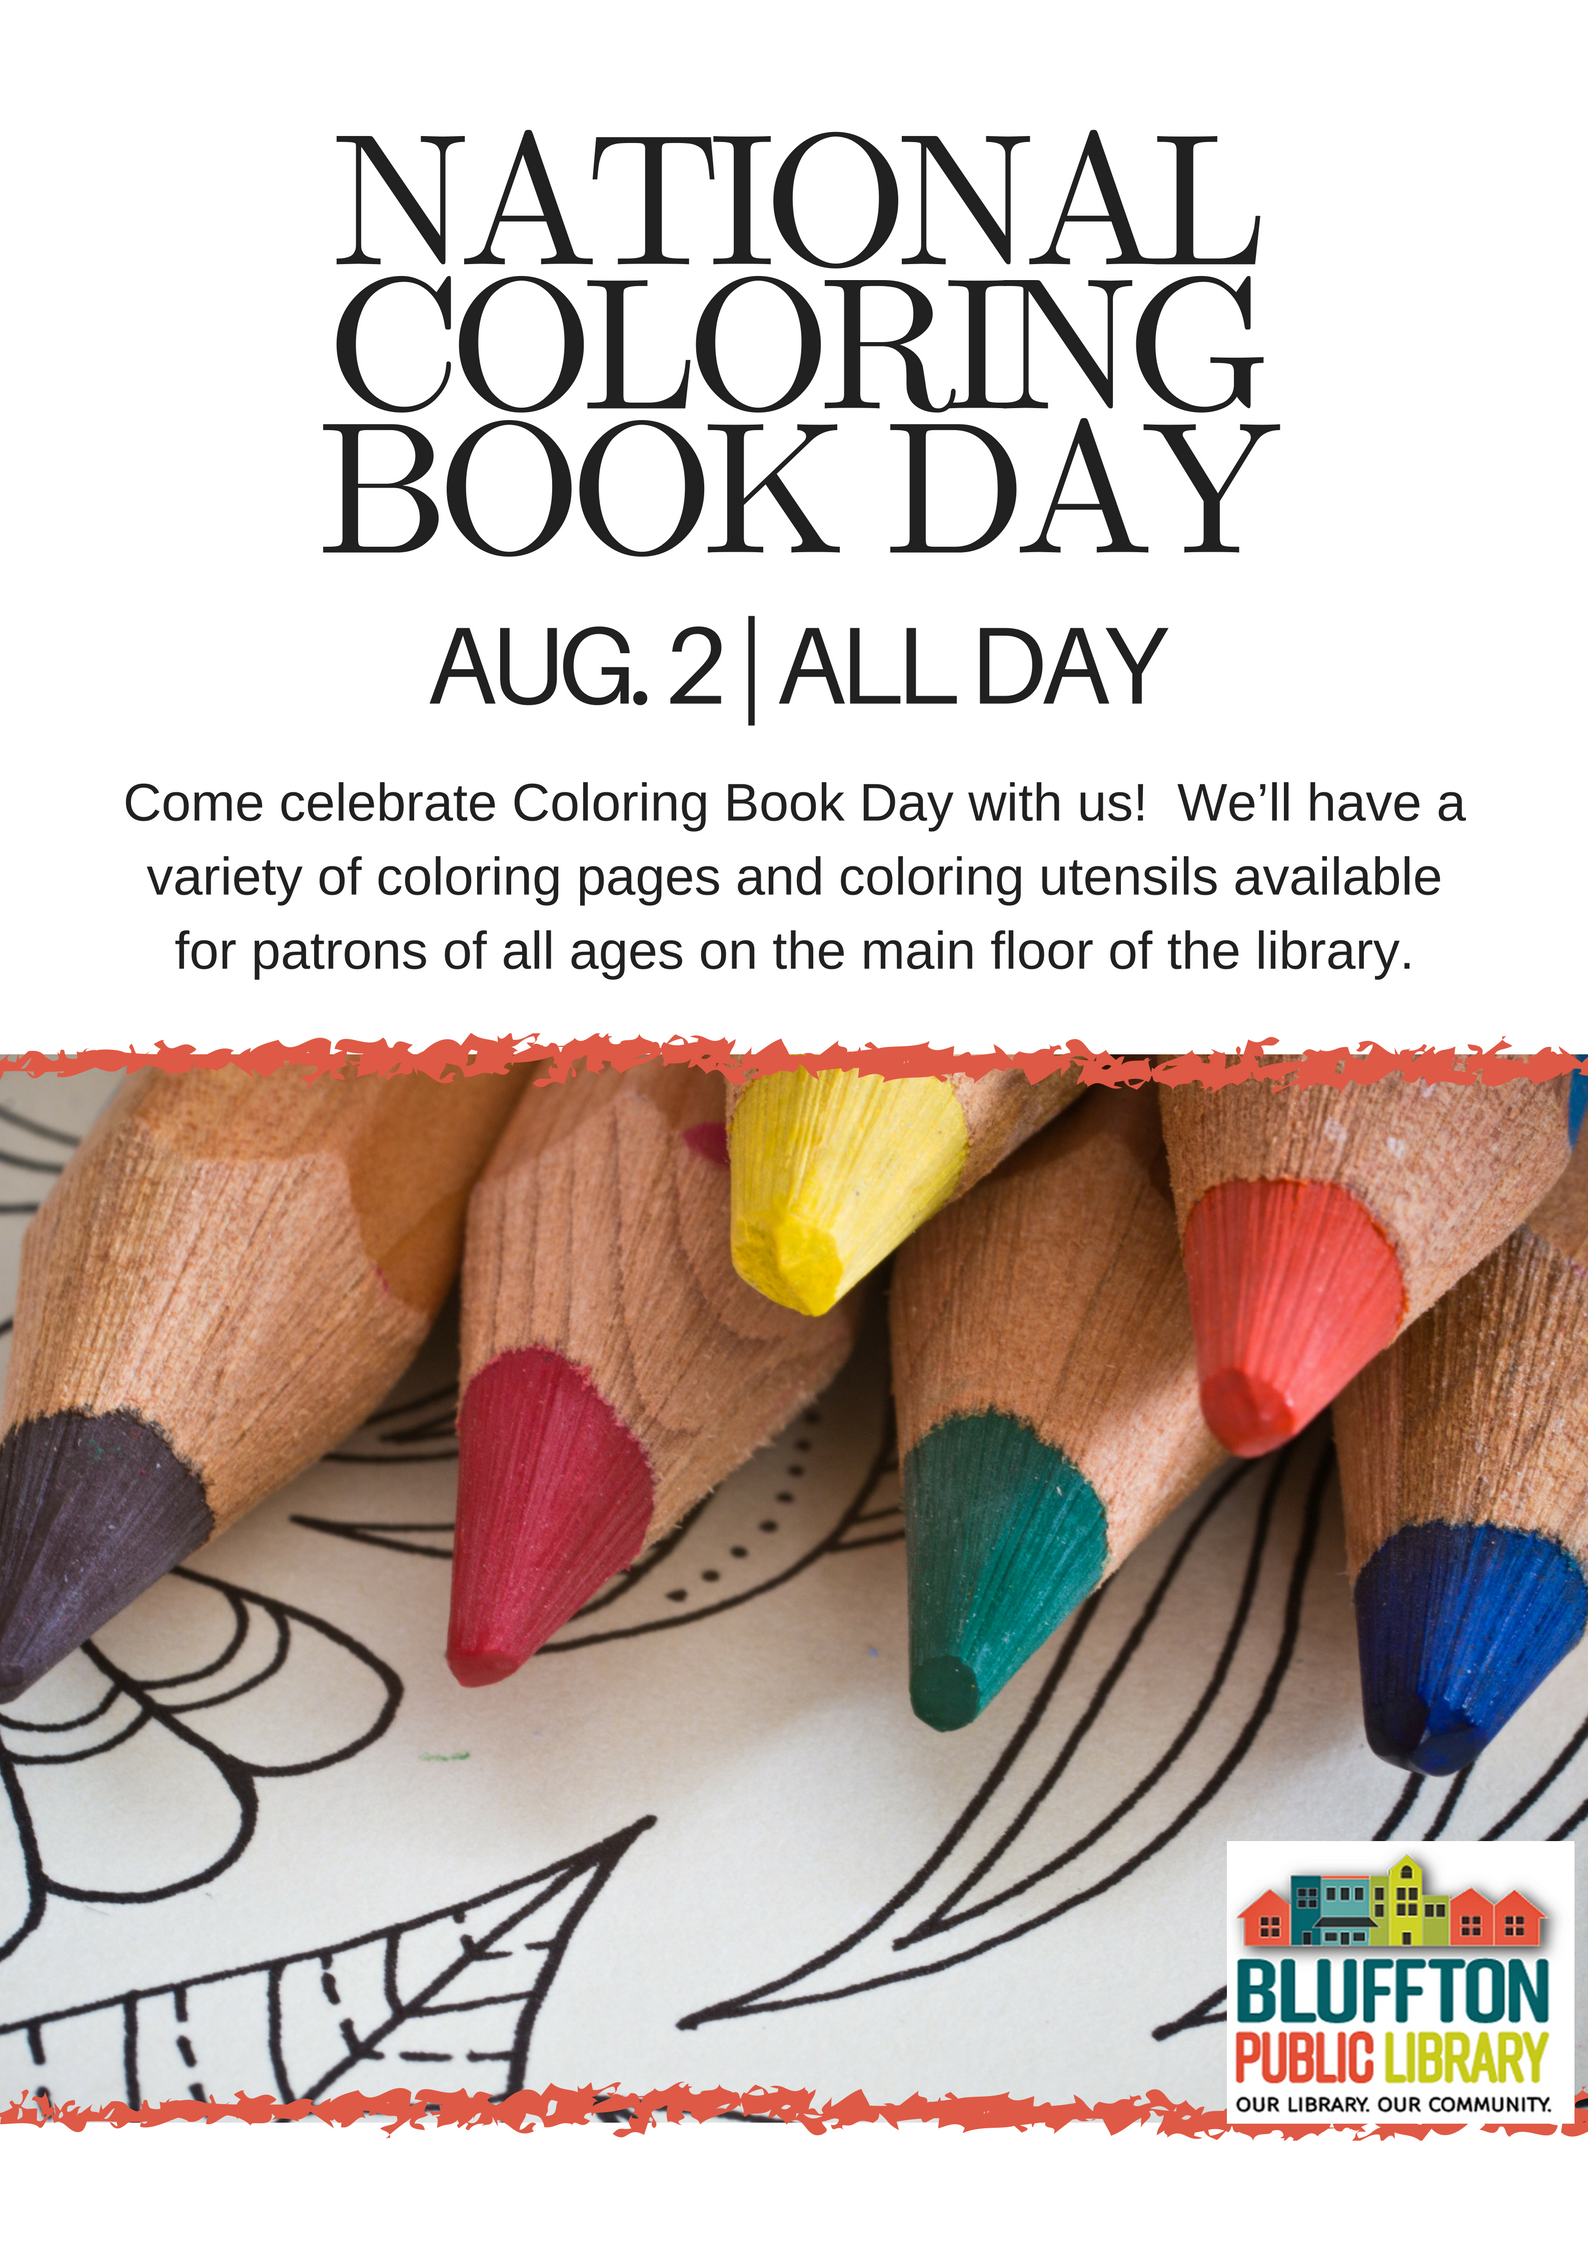 National Coloring Book Day Bluffton Public Library